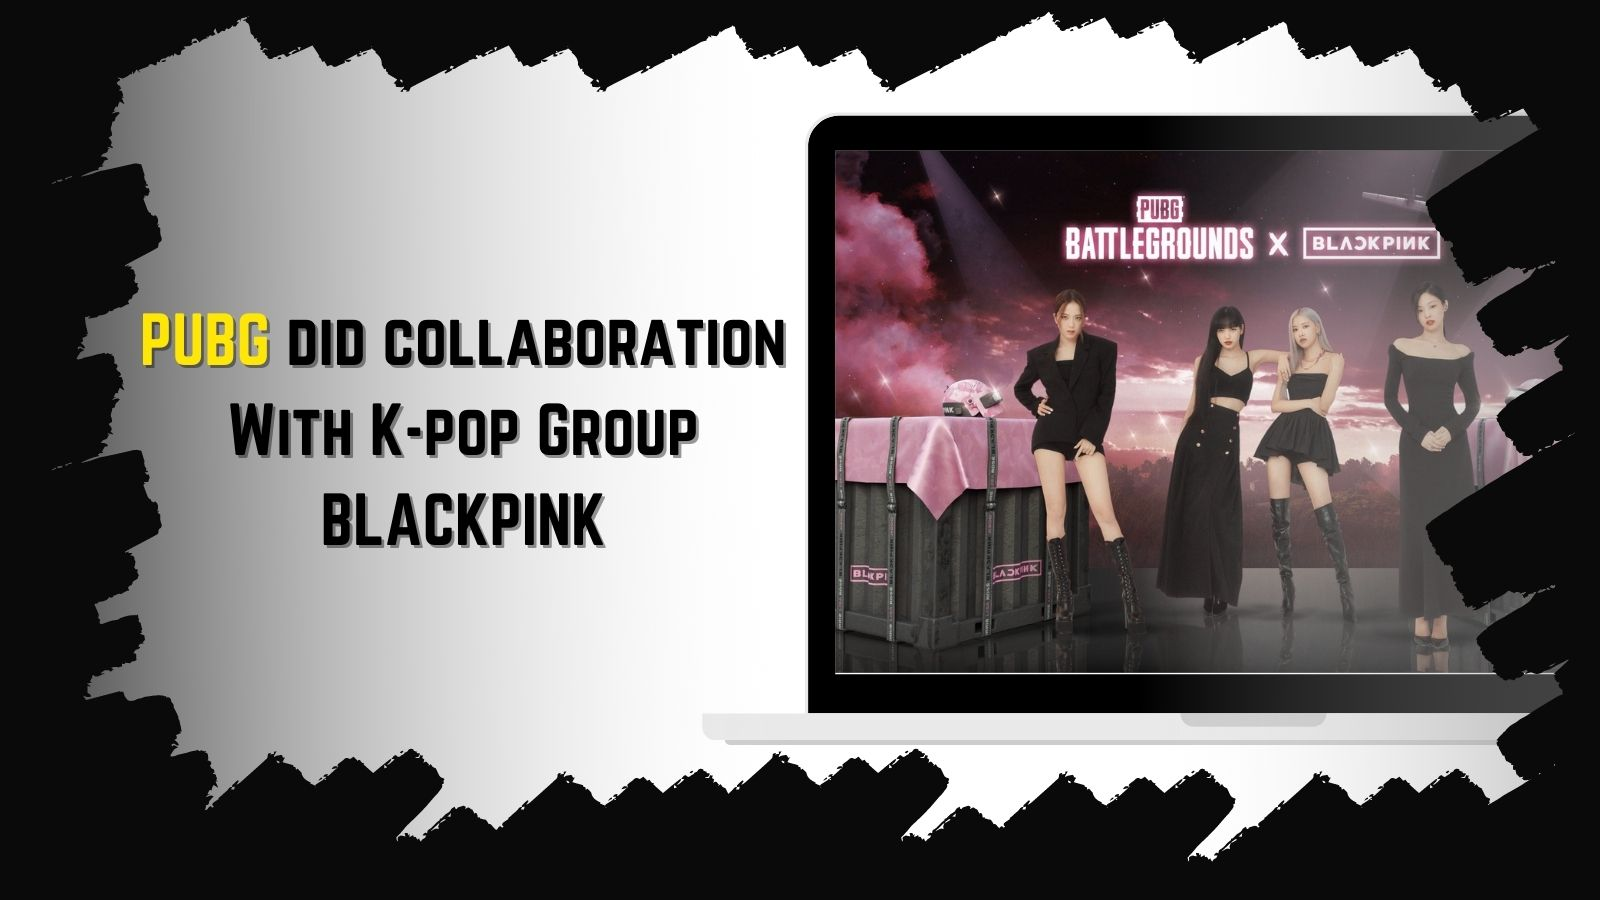 PUBG did collaboration With K-pop Group BLACKPINK